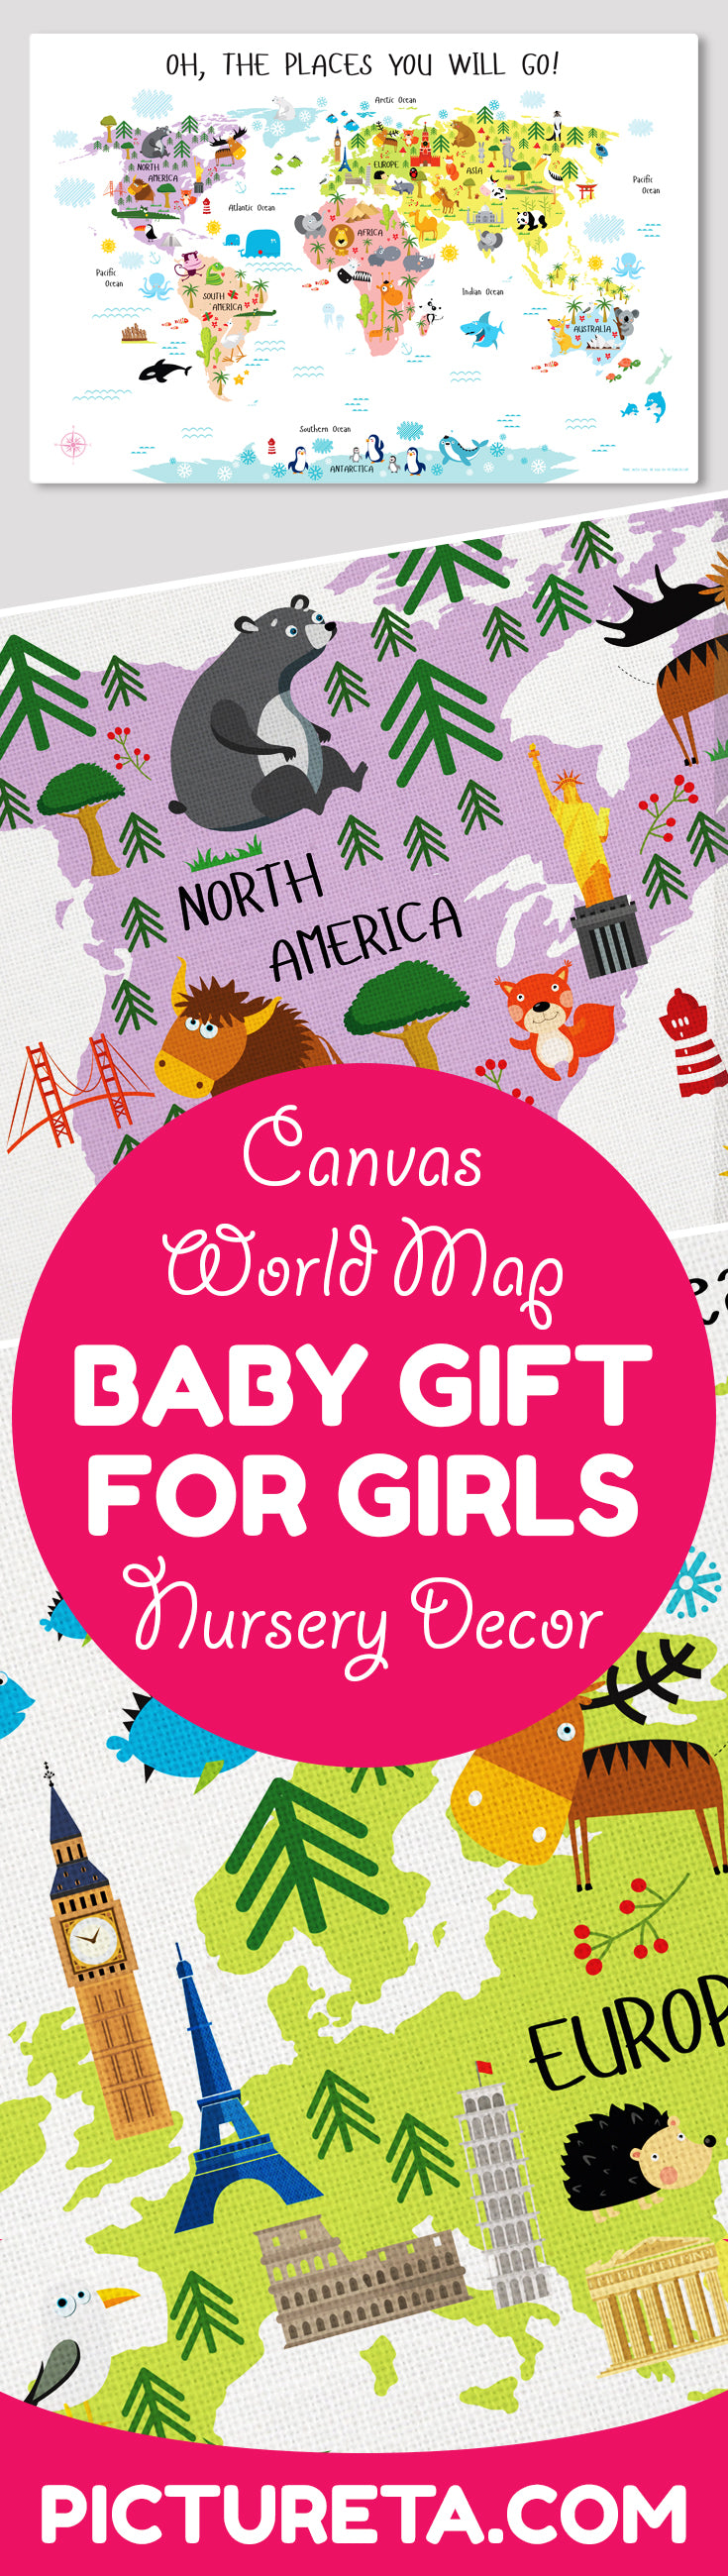 baby gift for girls nursery decor world map canvas